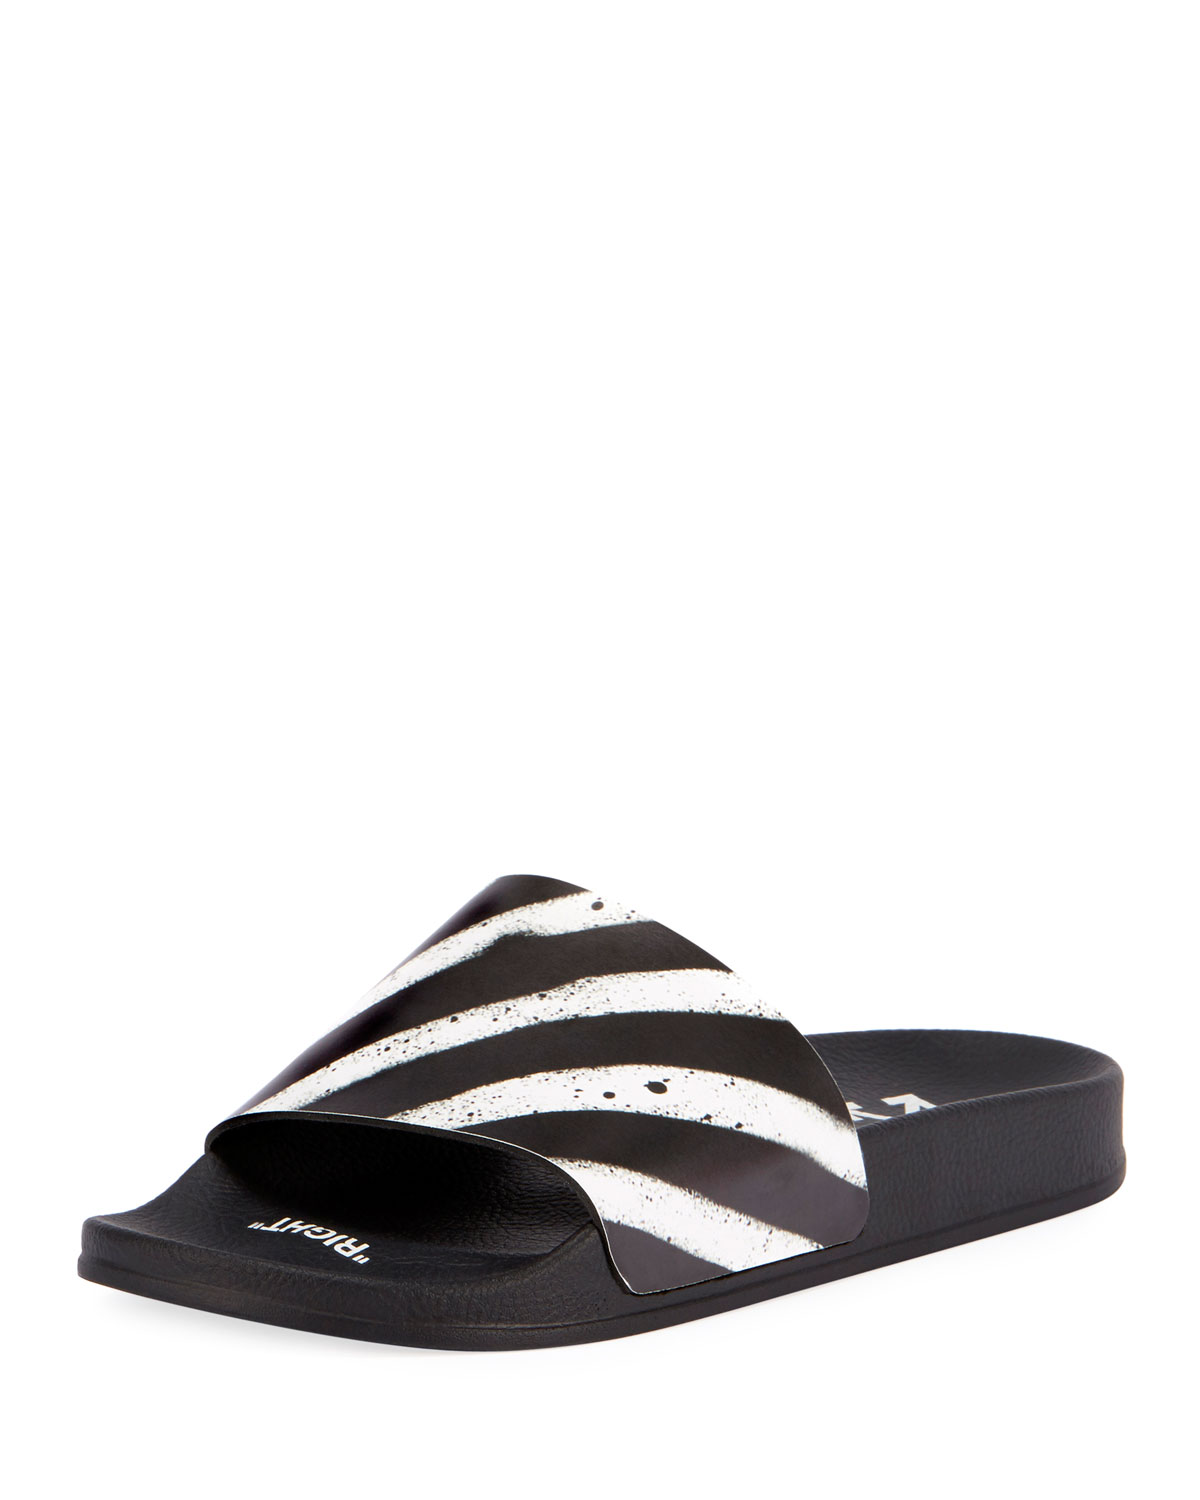 Off-White Spray Striped Slide Sandal | Neiman Marcus